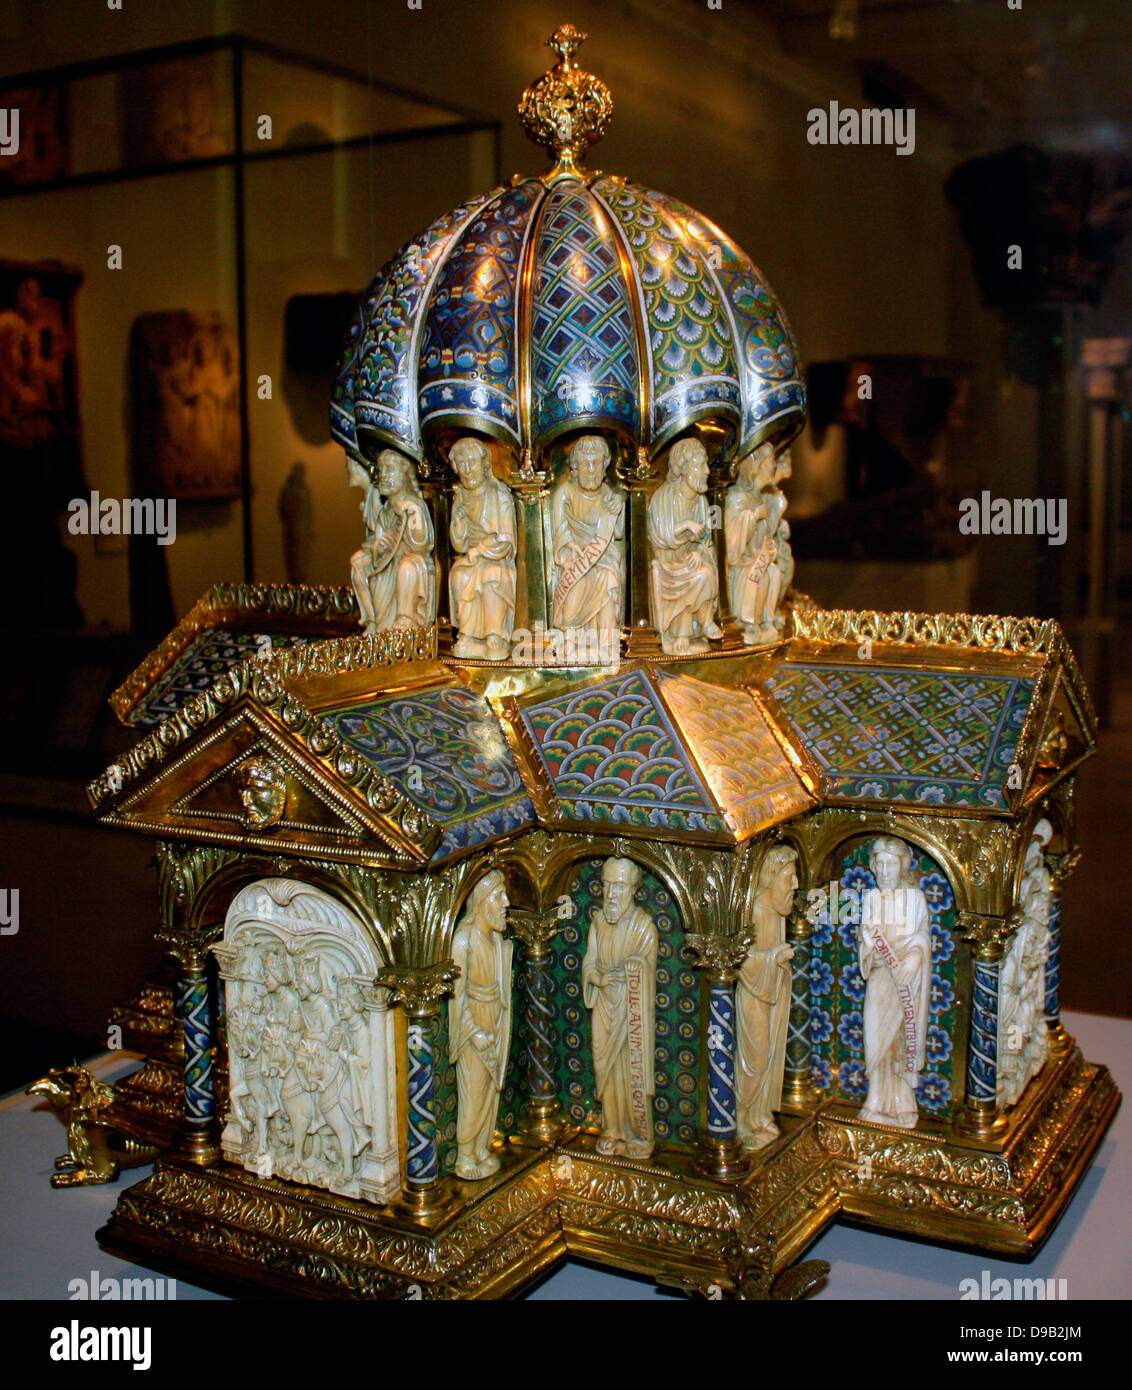 Tabernacle circa 1180. This Romanesque goldsmiths' work and carving combines widely varied foliage patterns - Stock Image